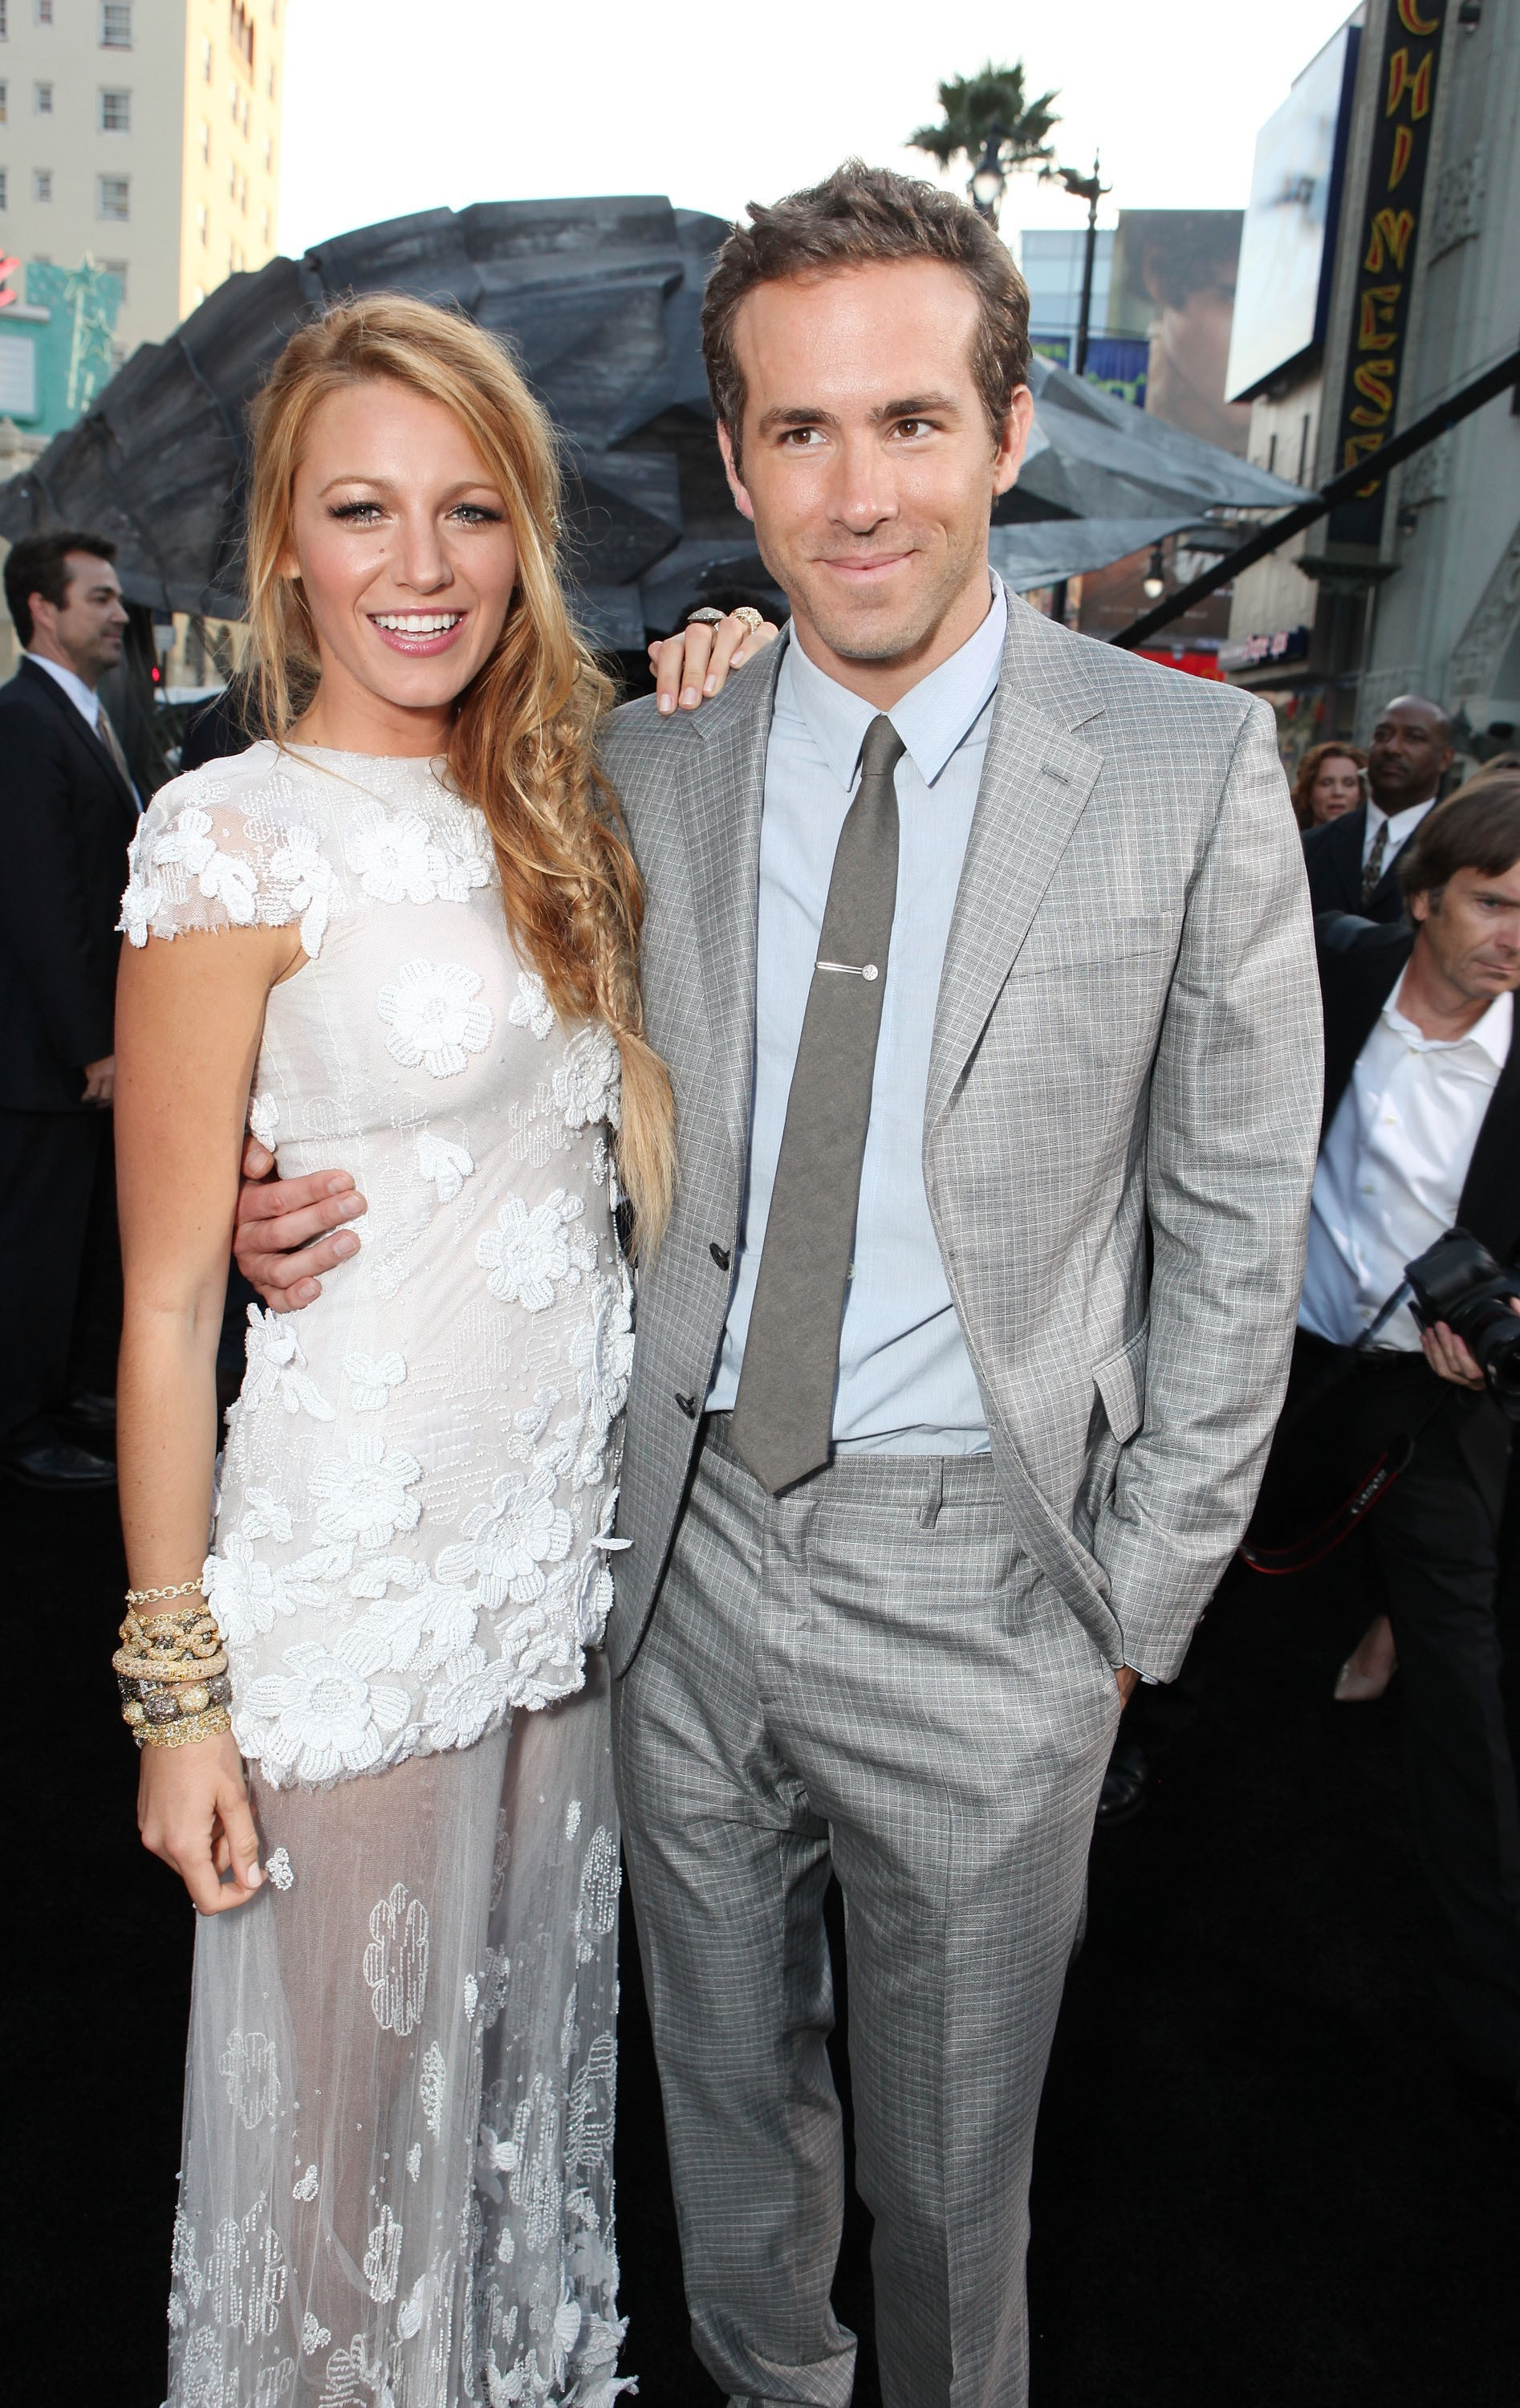 Did Blake Lively Stay With Ryan Reynolds After Dumping Leonardo